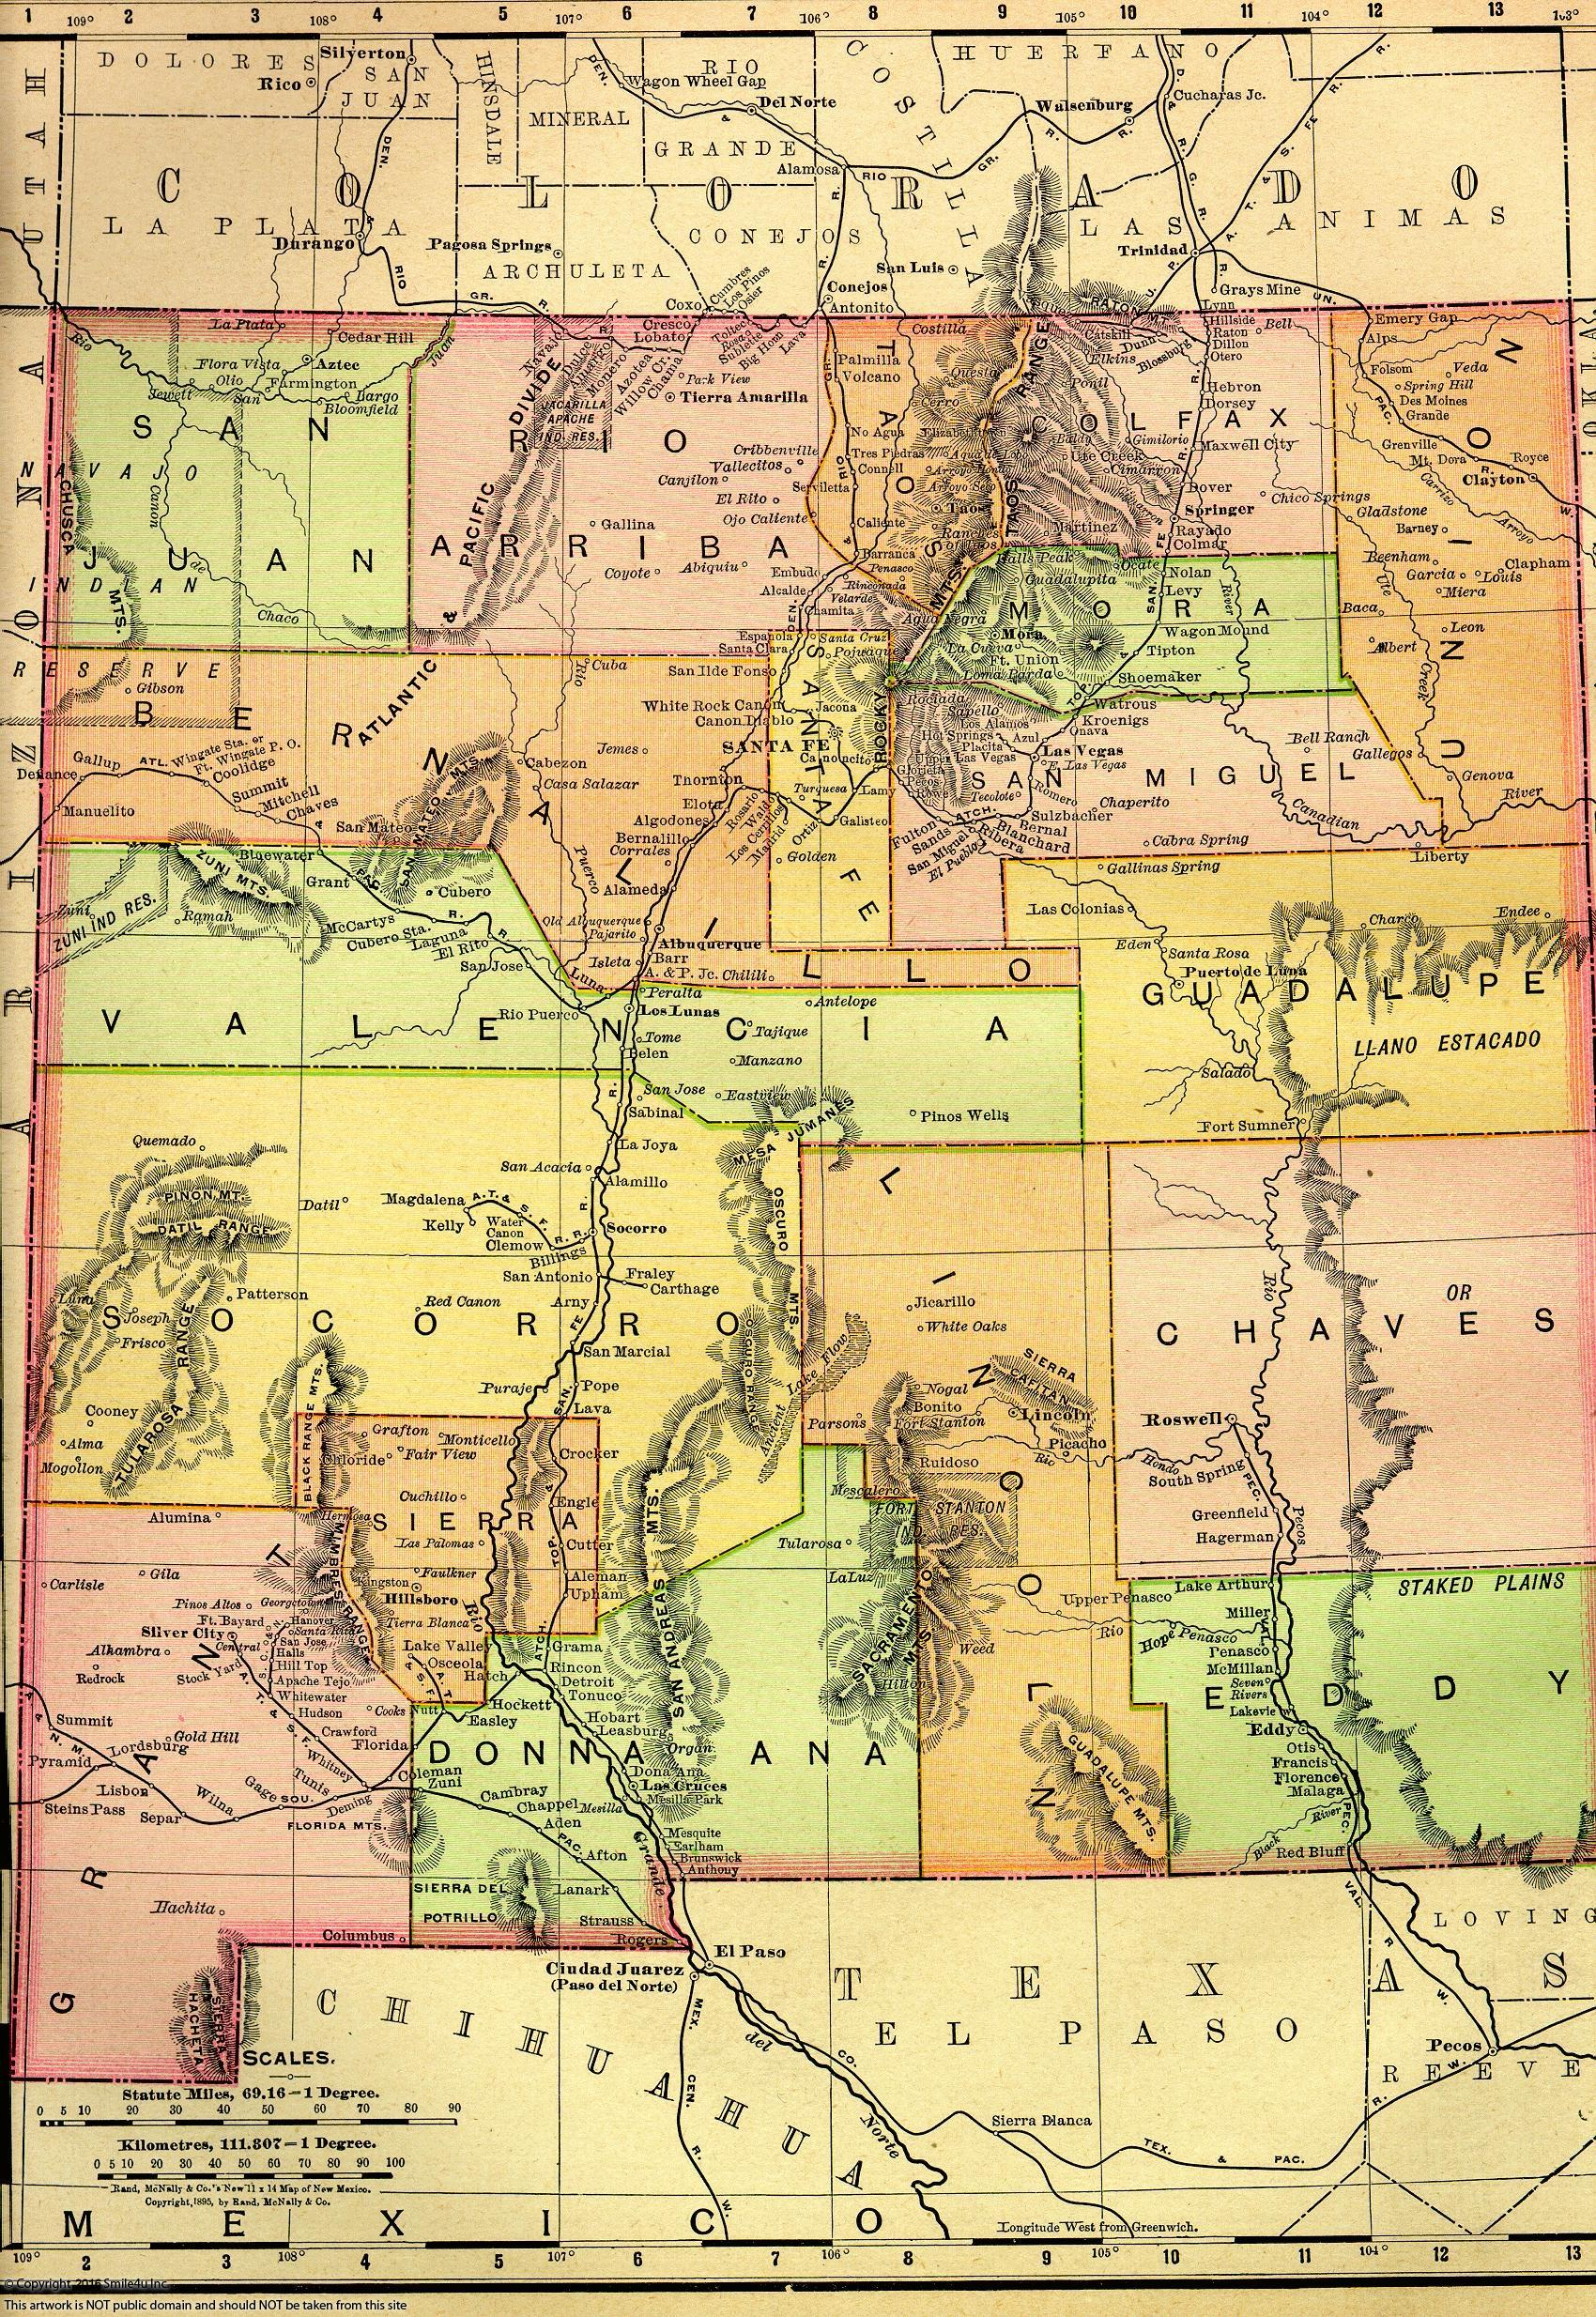 153873_watermarked_New Mexico State Map in 1895.jpg